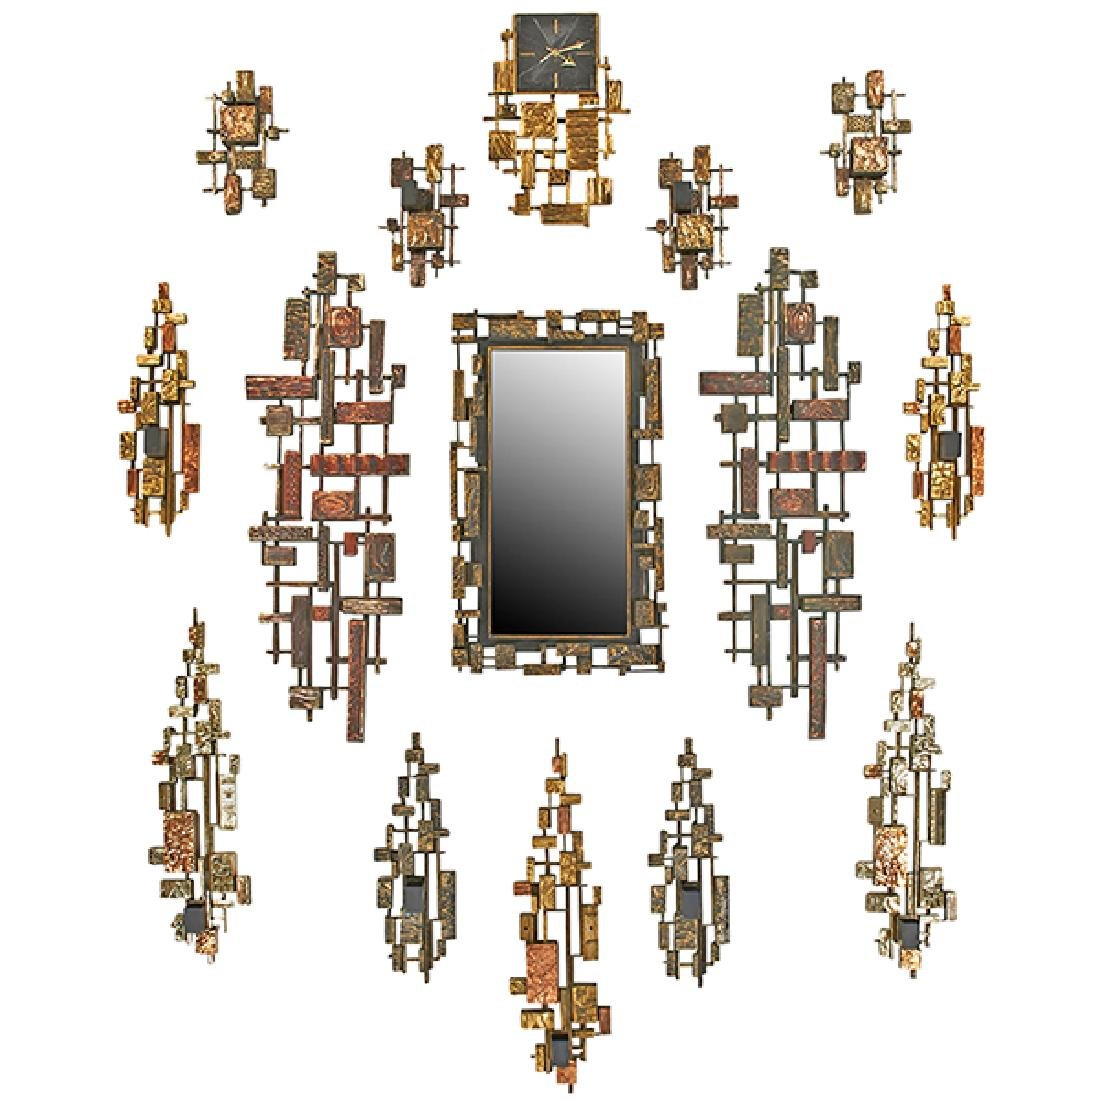 Syroco Brutalist wall sculptures, set of 15 mirror: